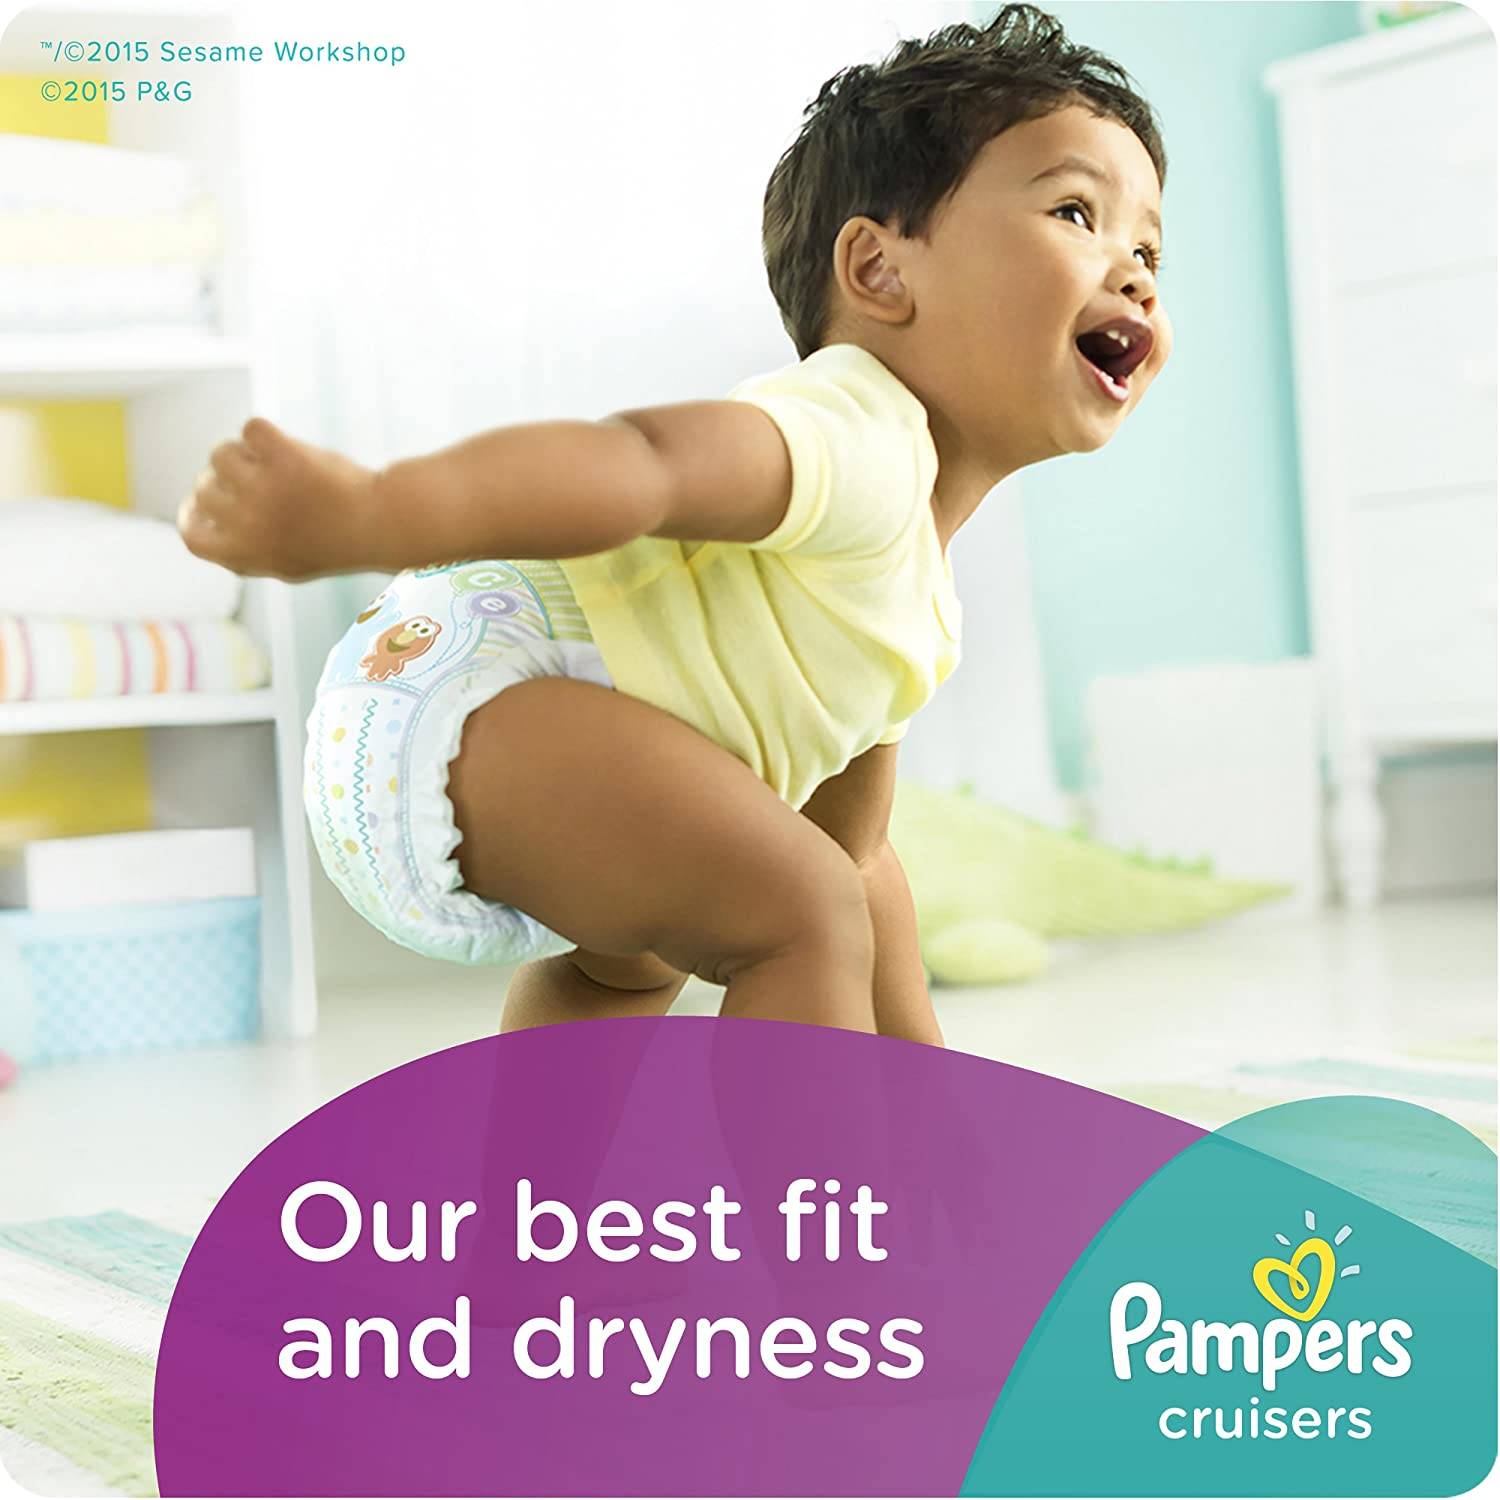 Amazon pampers cruisers disposable diapers size 7 92 count amazon pampers cruisers disposable diapers size 7 92 count economy pack plus health personal care nvjuhfo Image collections